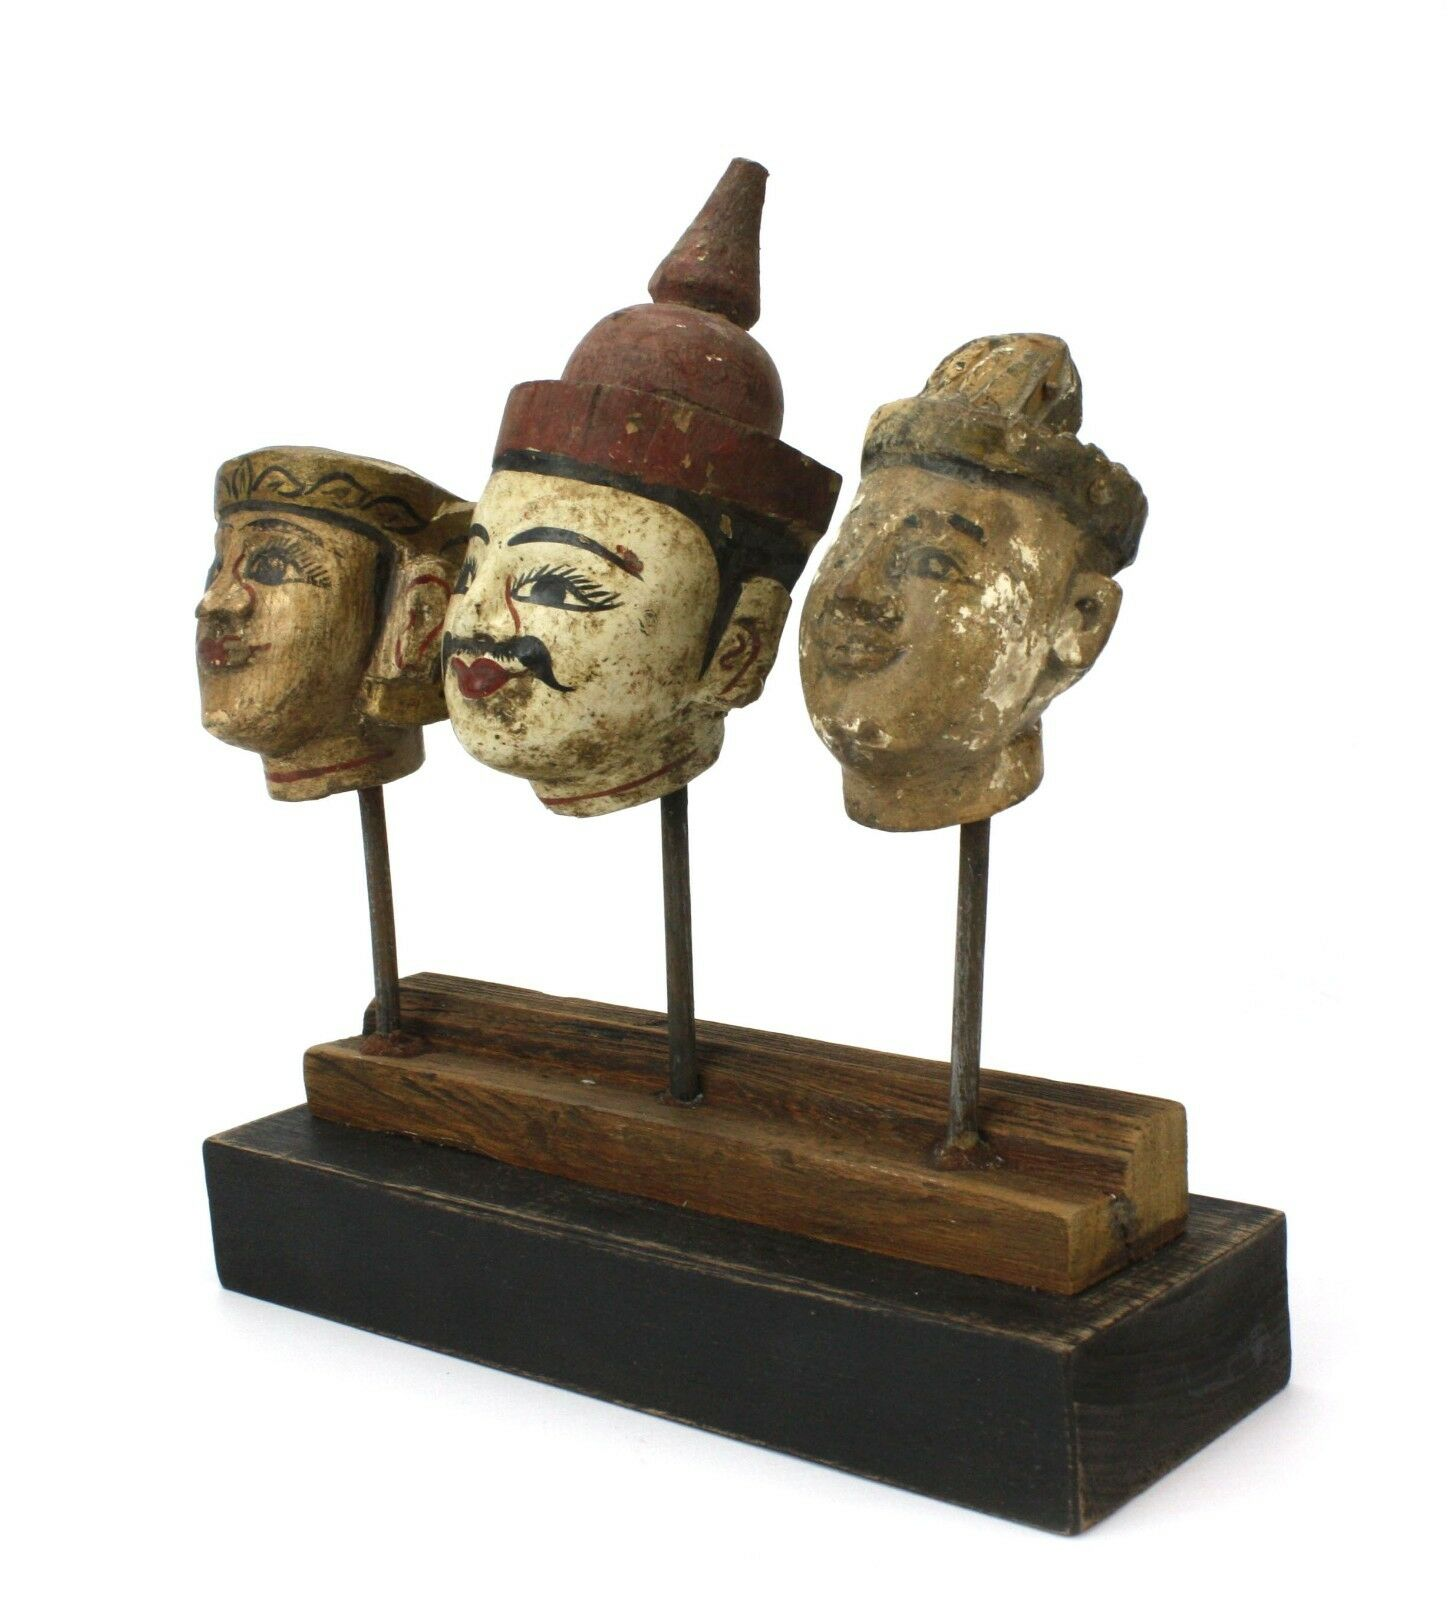 Antique Burmese Puppet heads on stand, BPH003. Vintage Marionette from Burma.